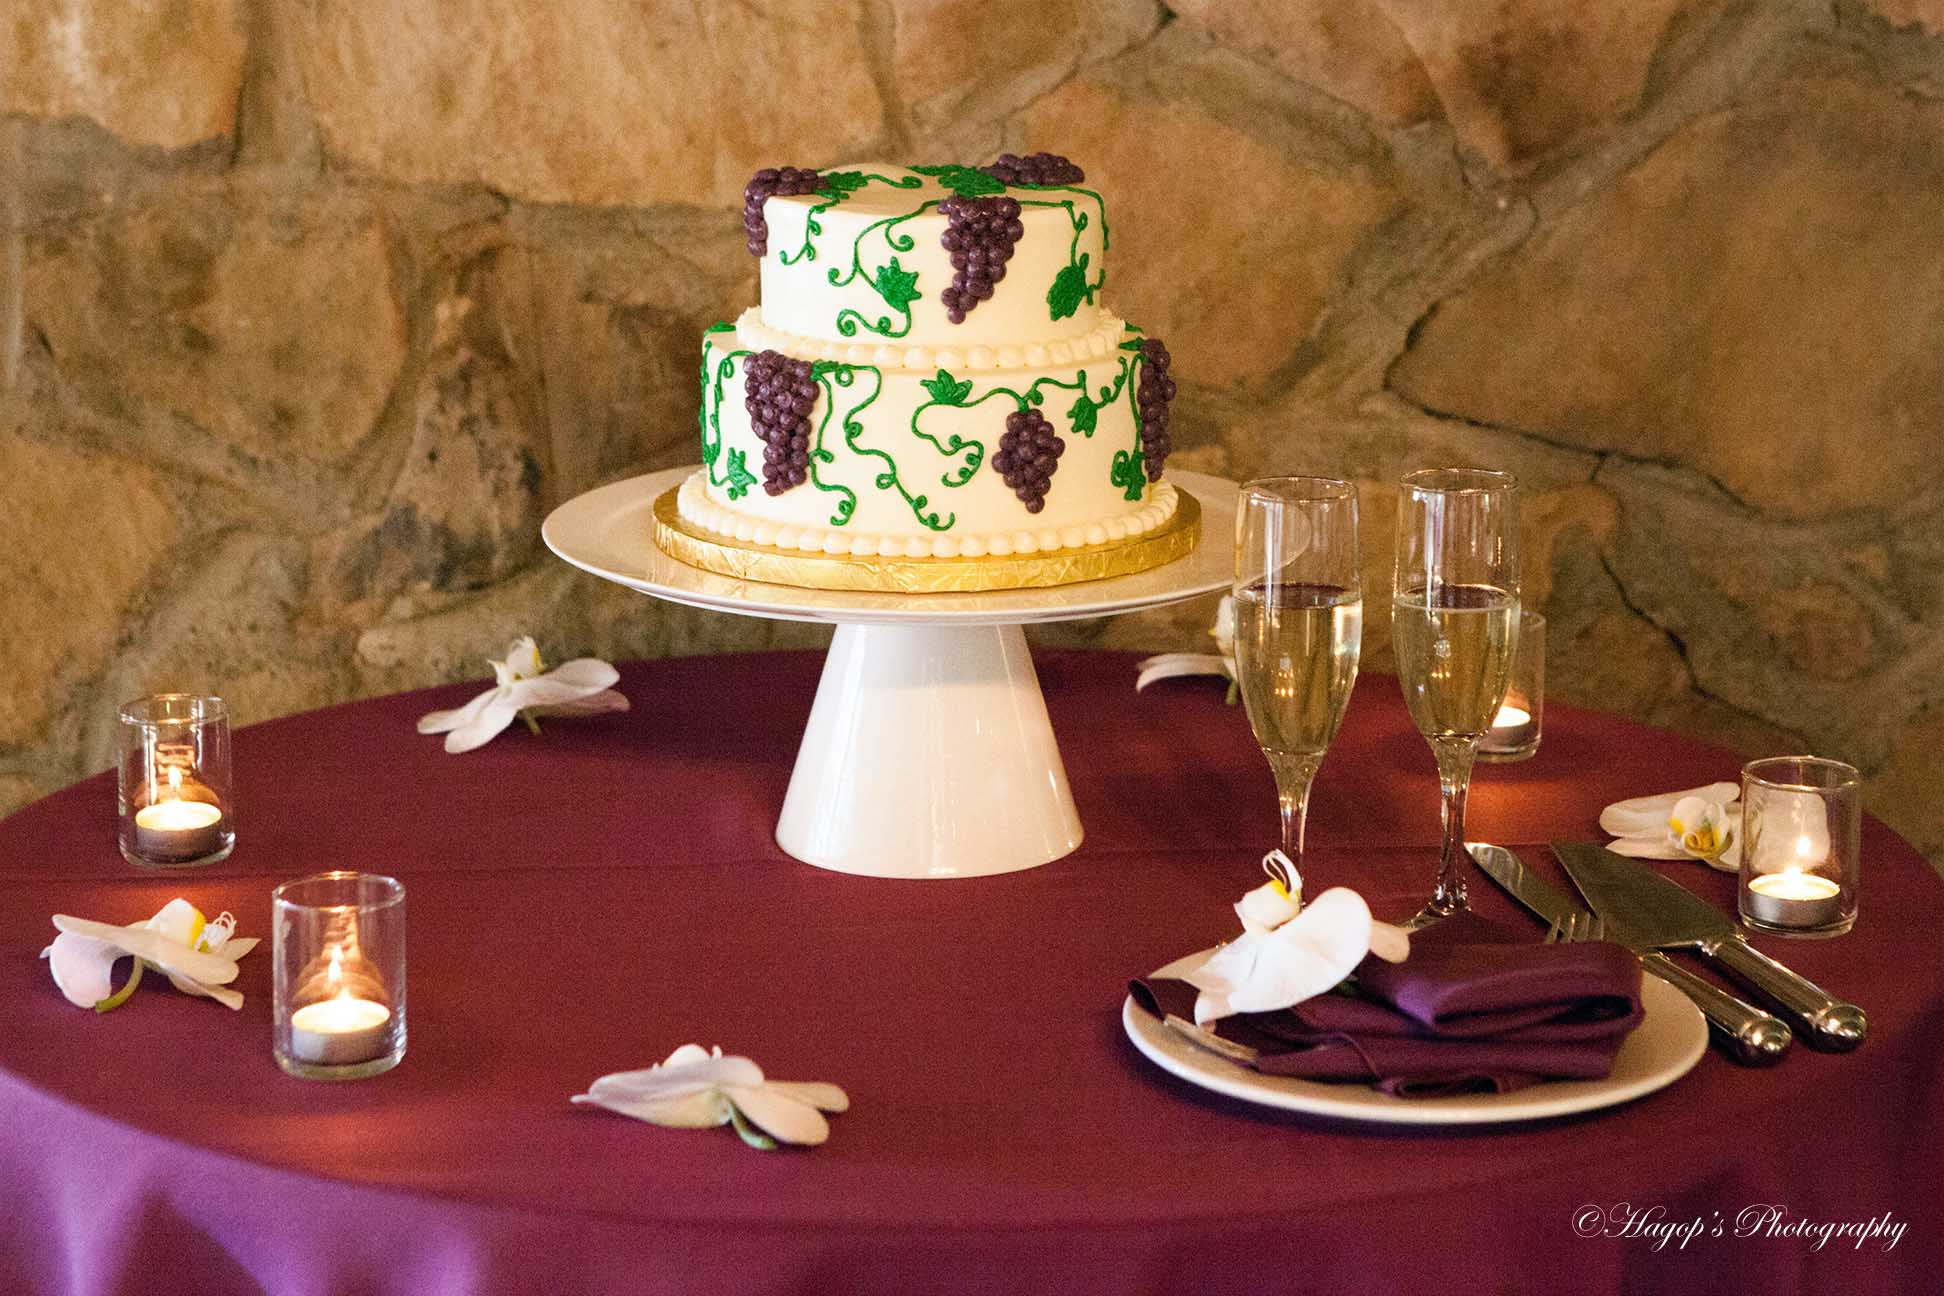 the wedding cake and champagne glasses